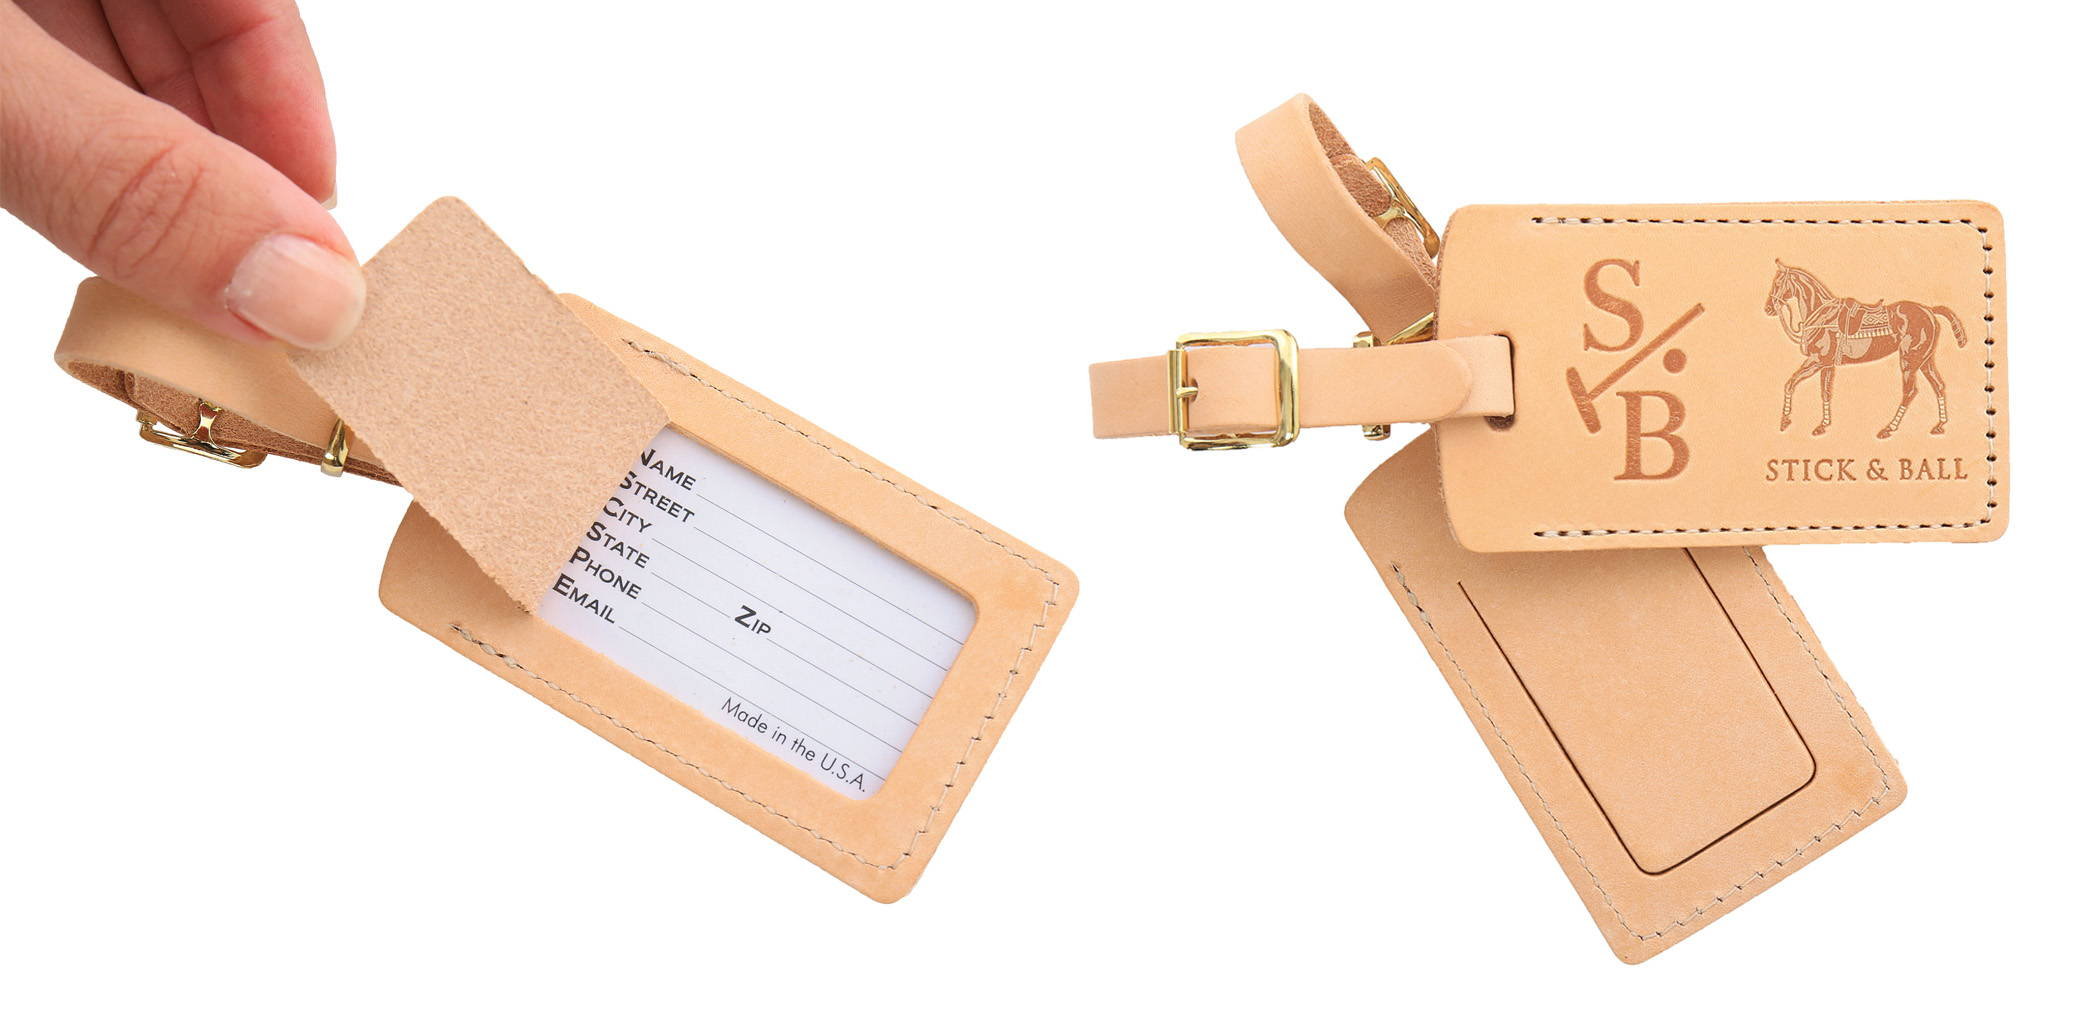 Equestrian inspired vegetable-tanned leather luggage tags with Stick & Ball logo & Polo Pony